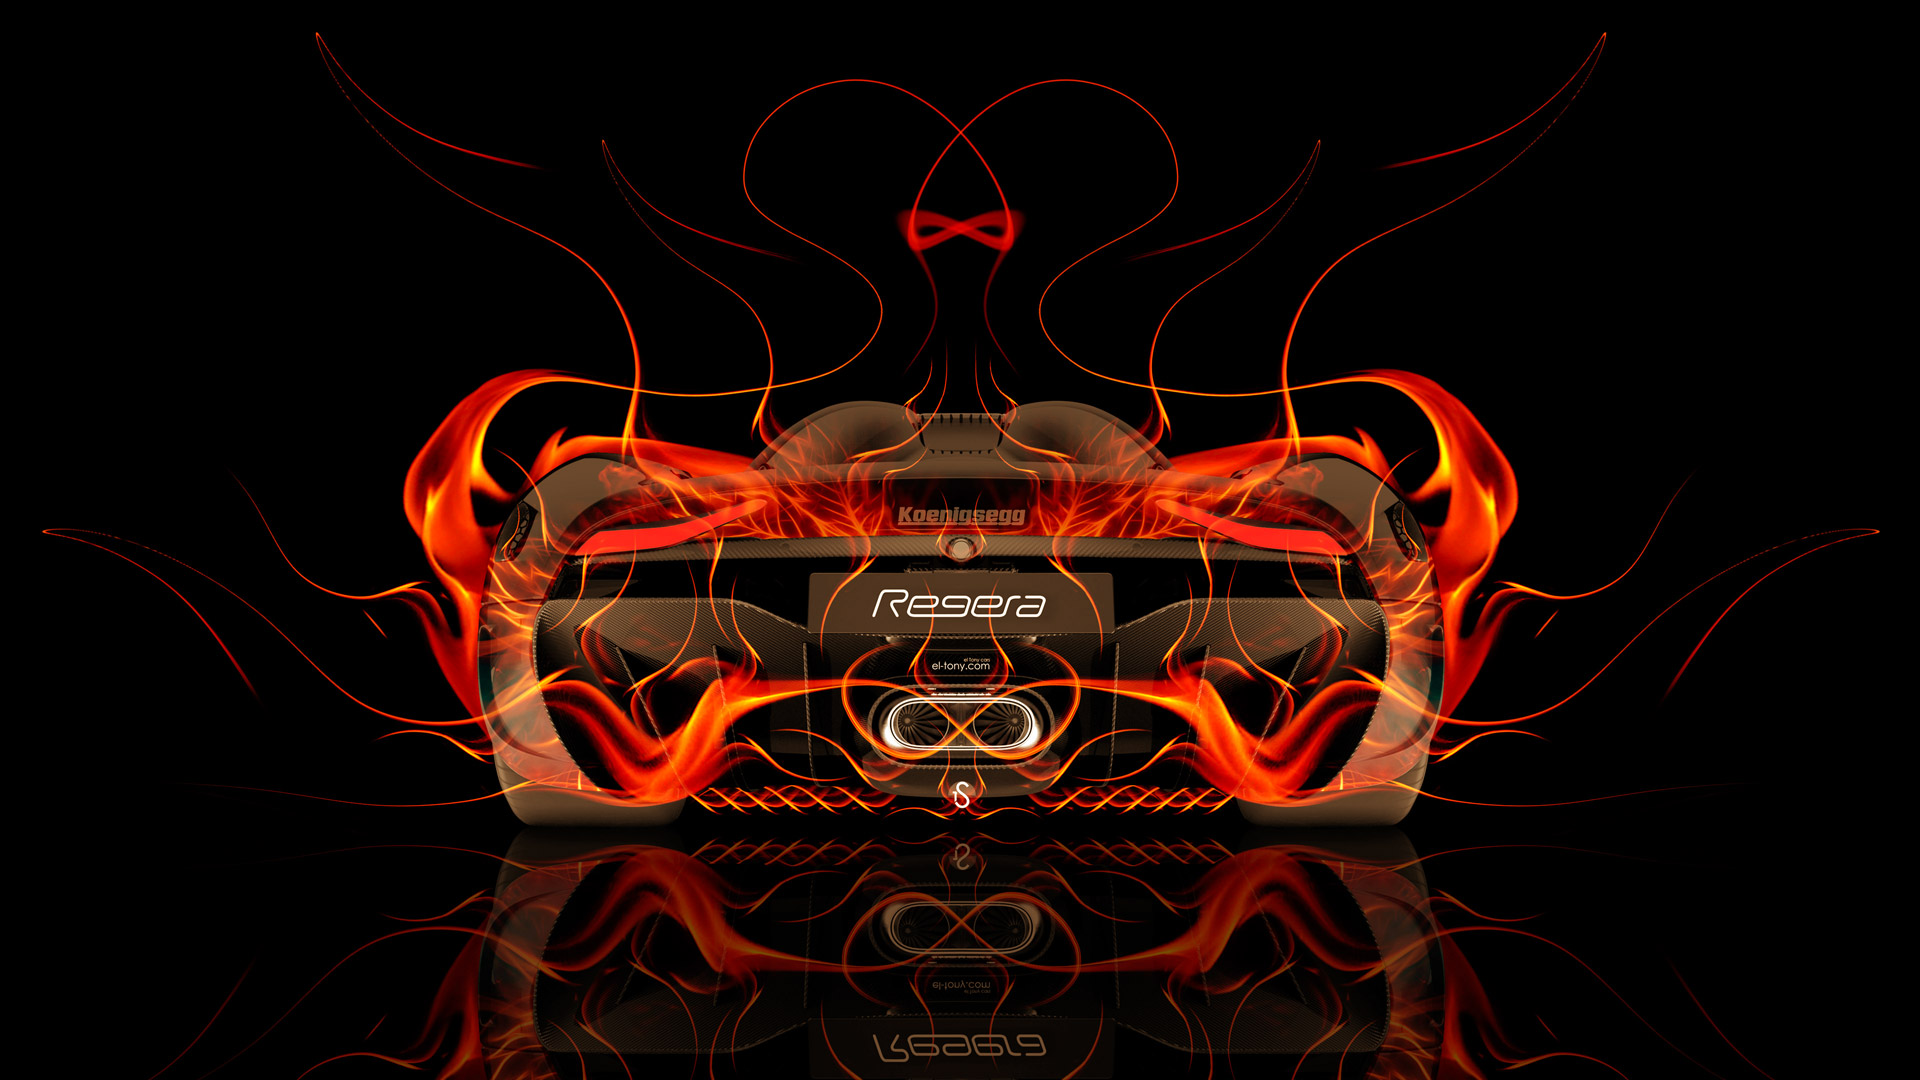 ... Koenigsegg Regera Back Fire Abstract Car 2015